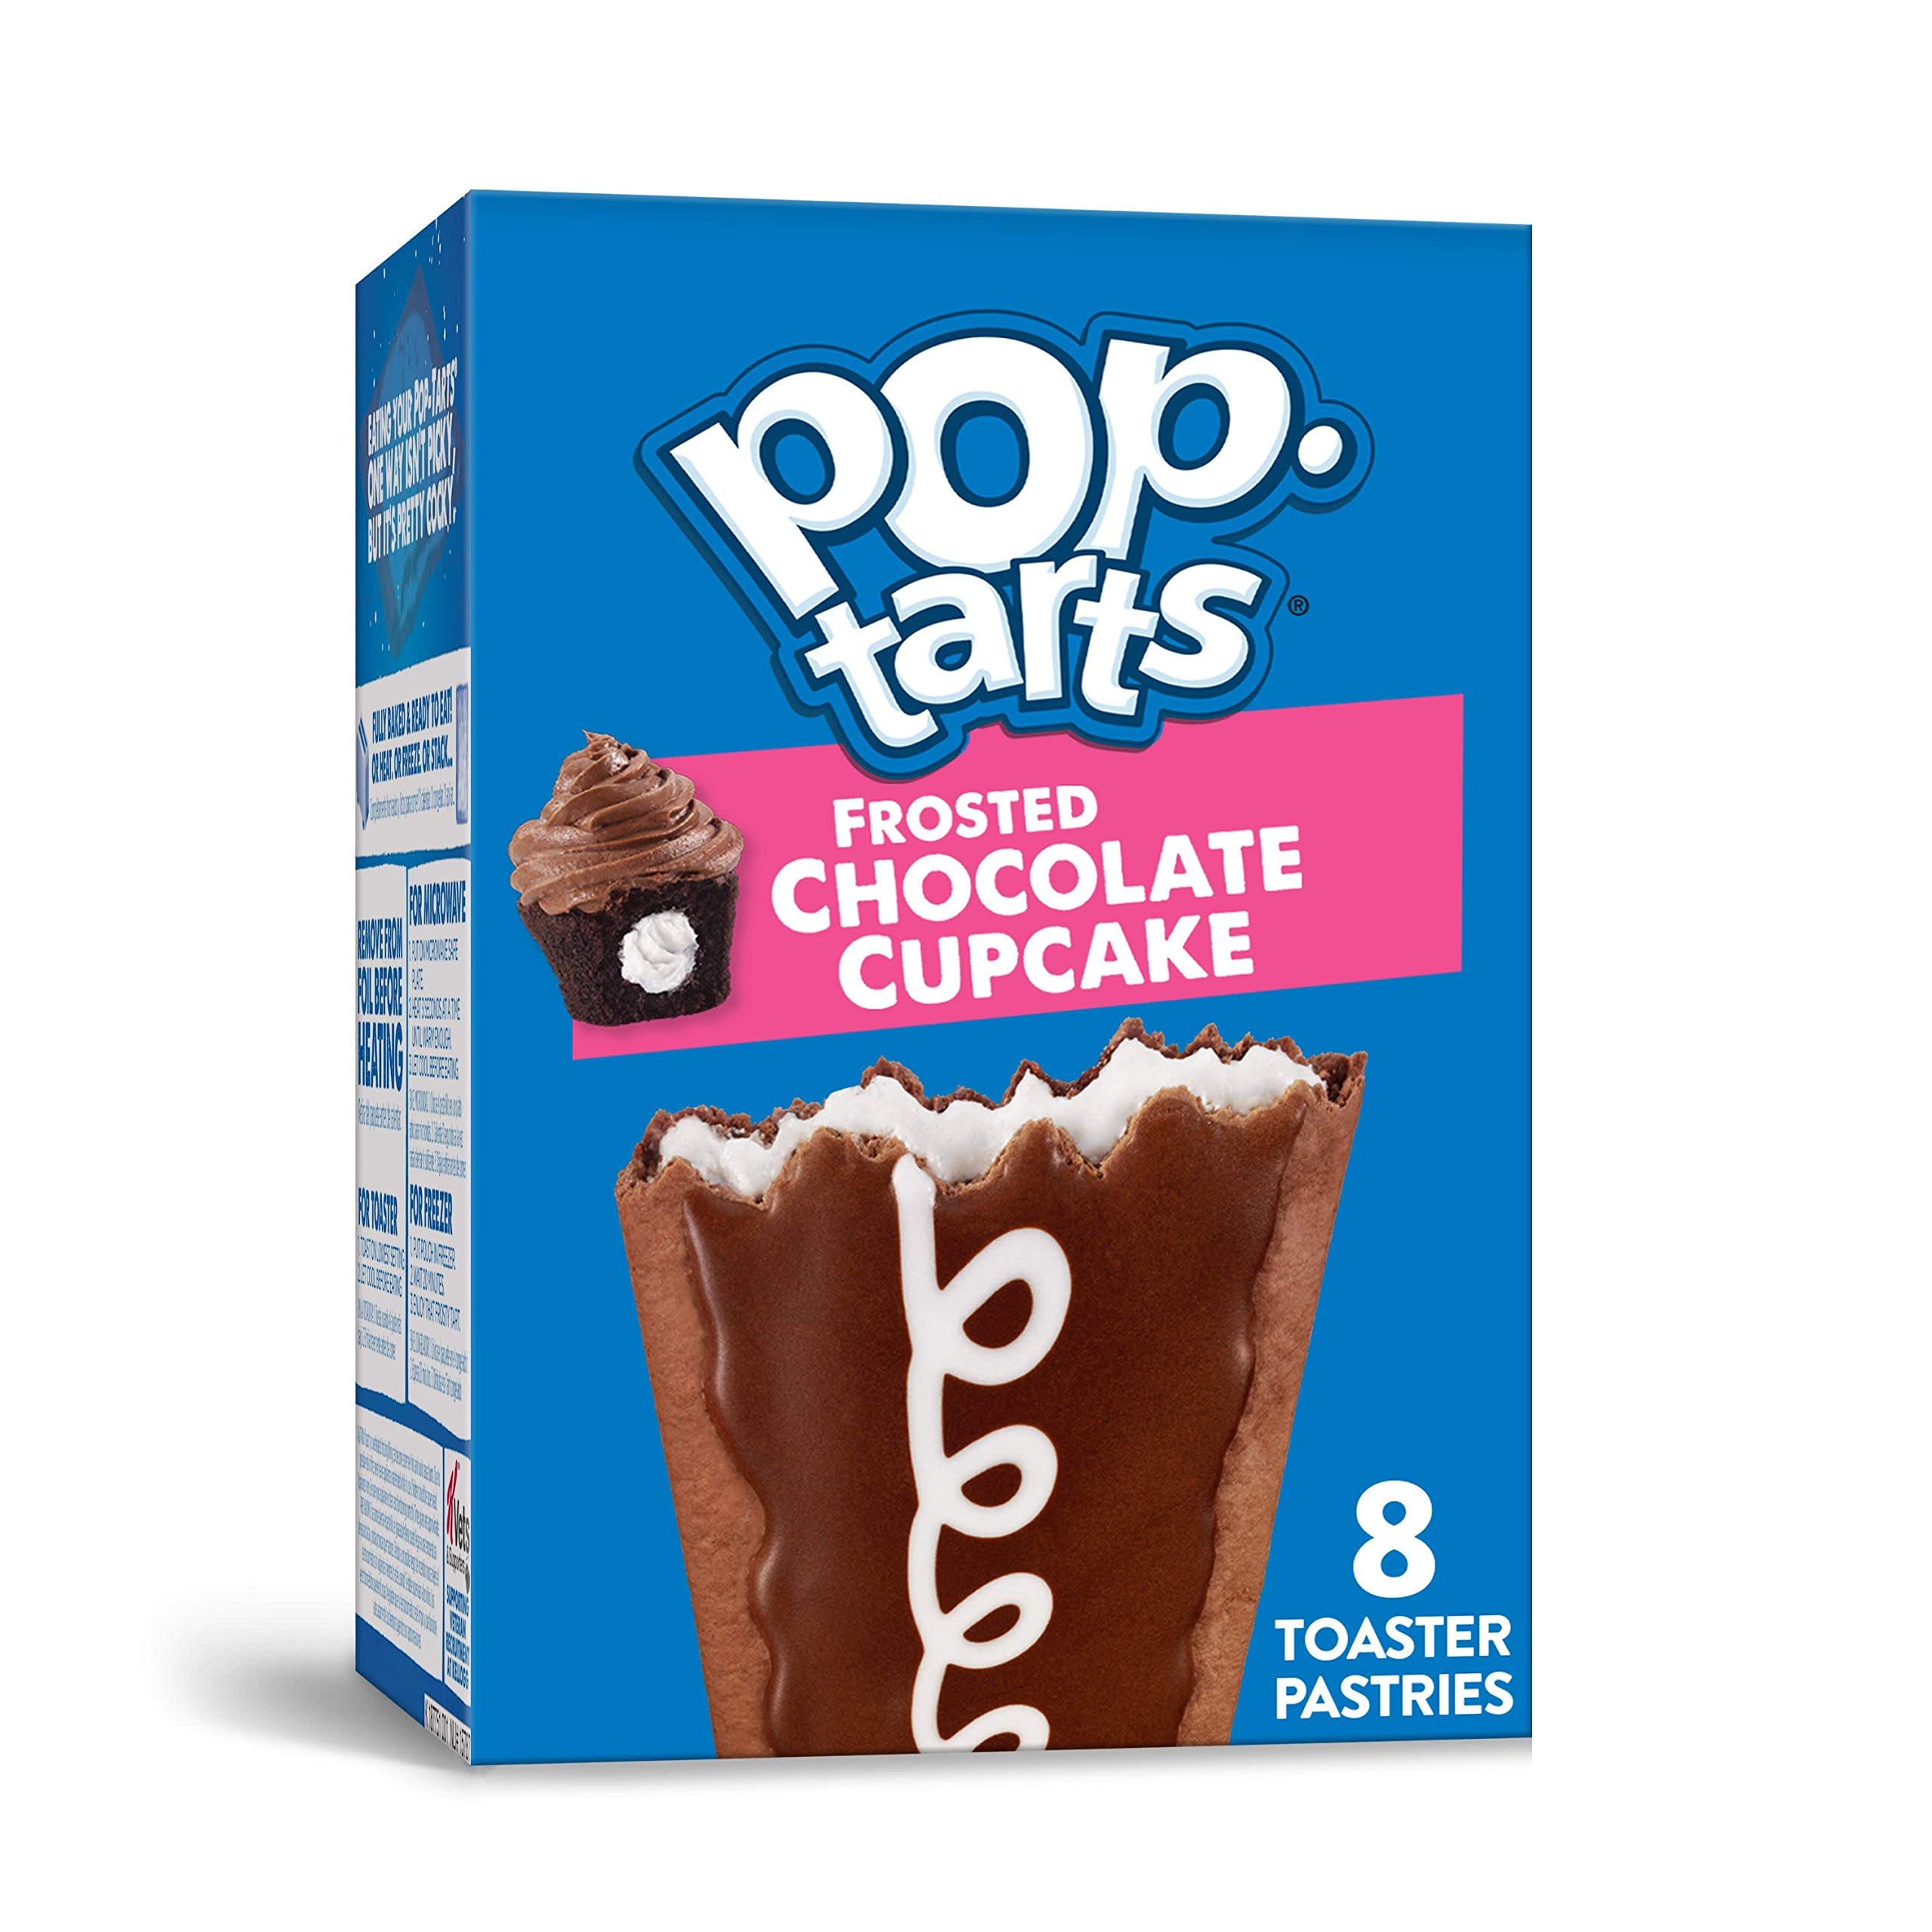 Pop-Tarts, Breakfast Toaster Pastries, Frosted Chocolate Cupcake, Proudly Baked in the USA, Value Pack, 13.5oz Box (4 Count)